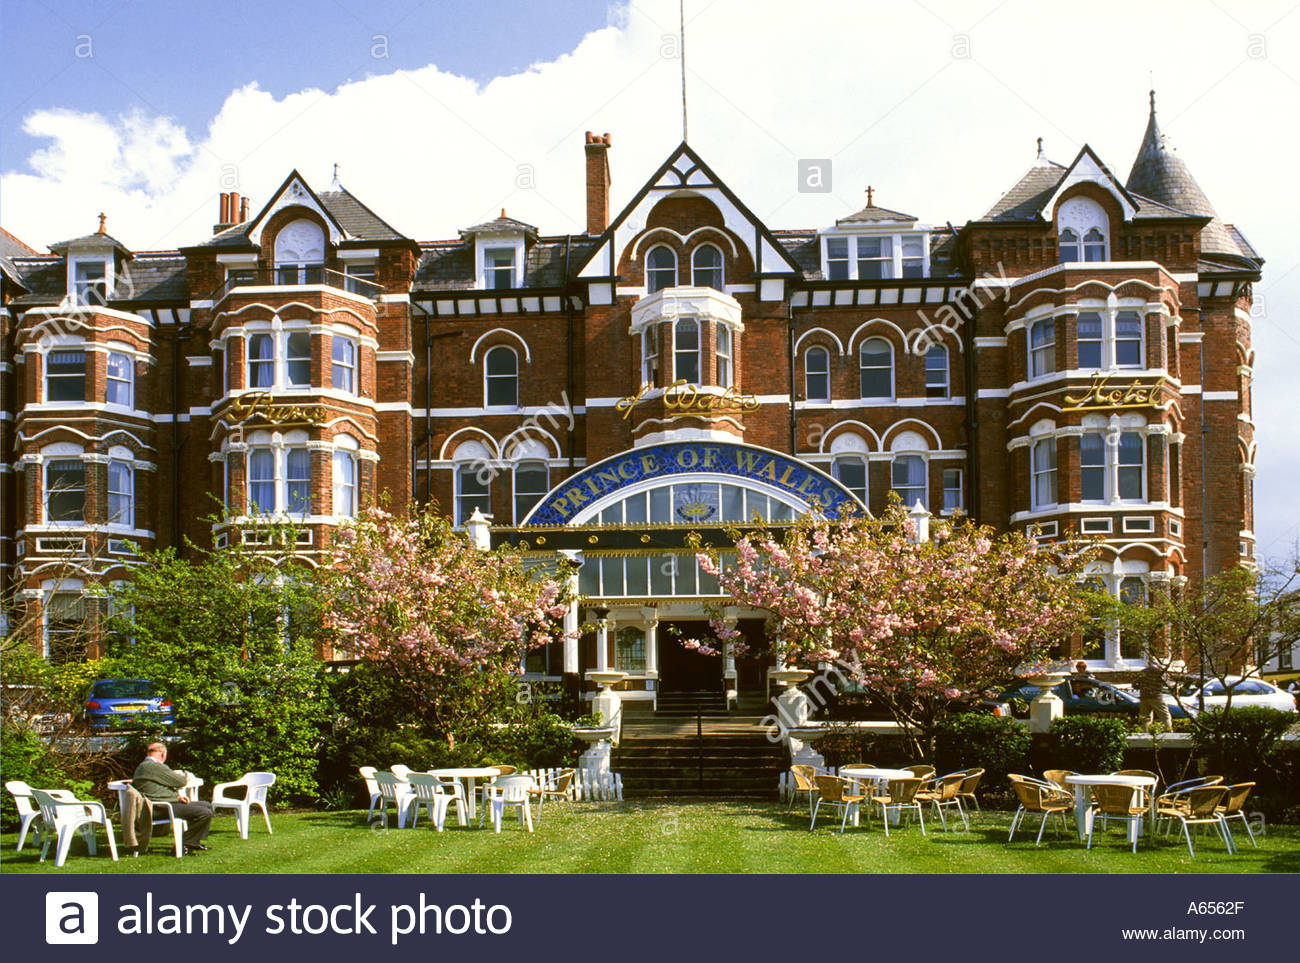 Prince of Wales Hotel Lord Street, Southport, Merseyside England, Regno Unito Immagini Stock